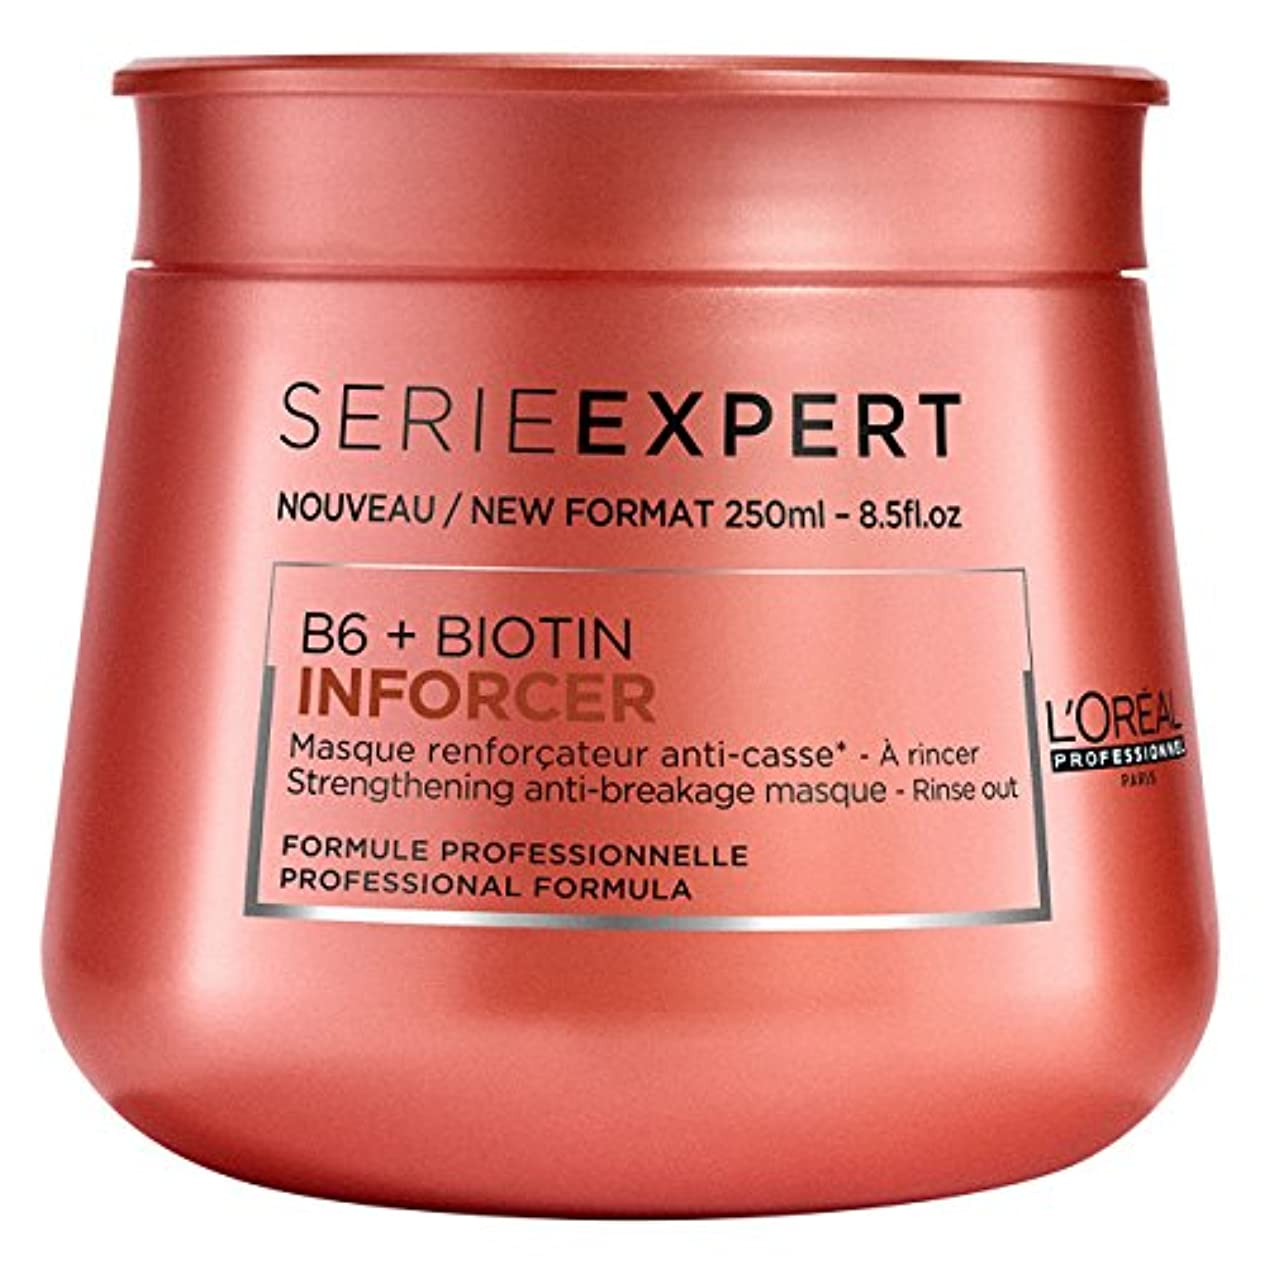 外向きチャールズキージングナンセンスL'Oreal Serie Expert B6 + Biotin INFORCER Strengthening Anti-Breakage Masque 250 ml [並行輸入品]